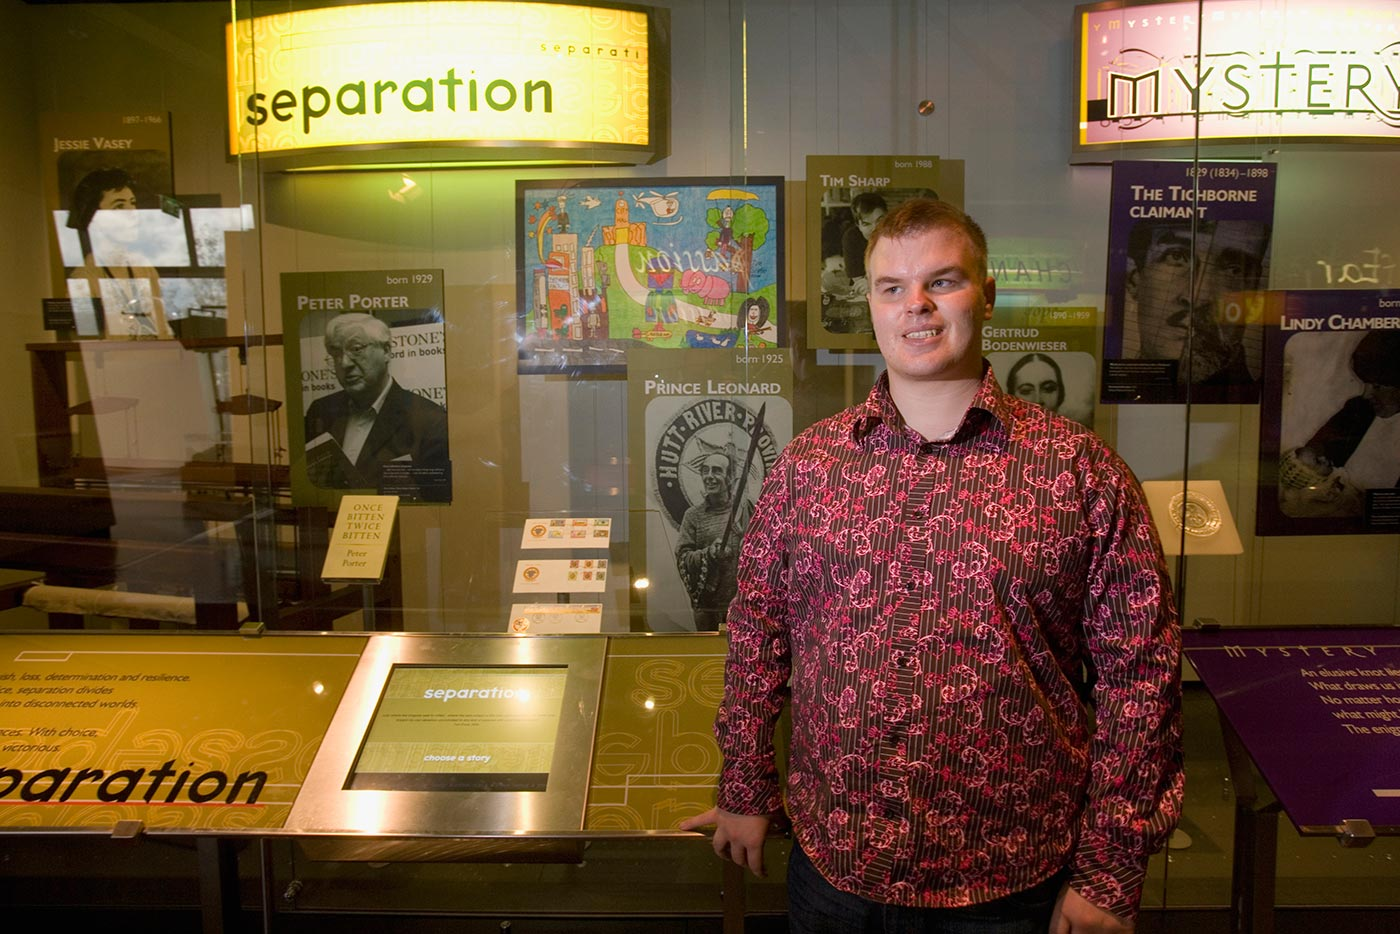 Young man in a patterned shirt, standing in front of a large glass exhibition display case - click to view larger image